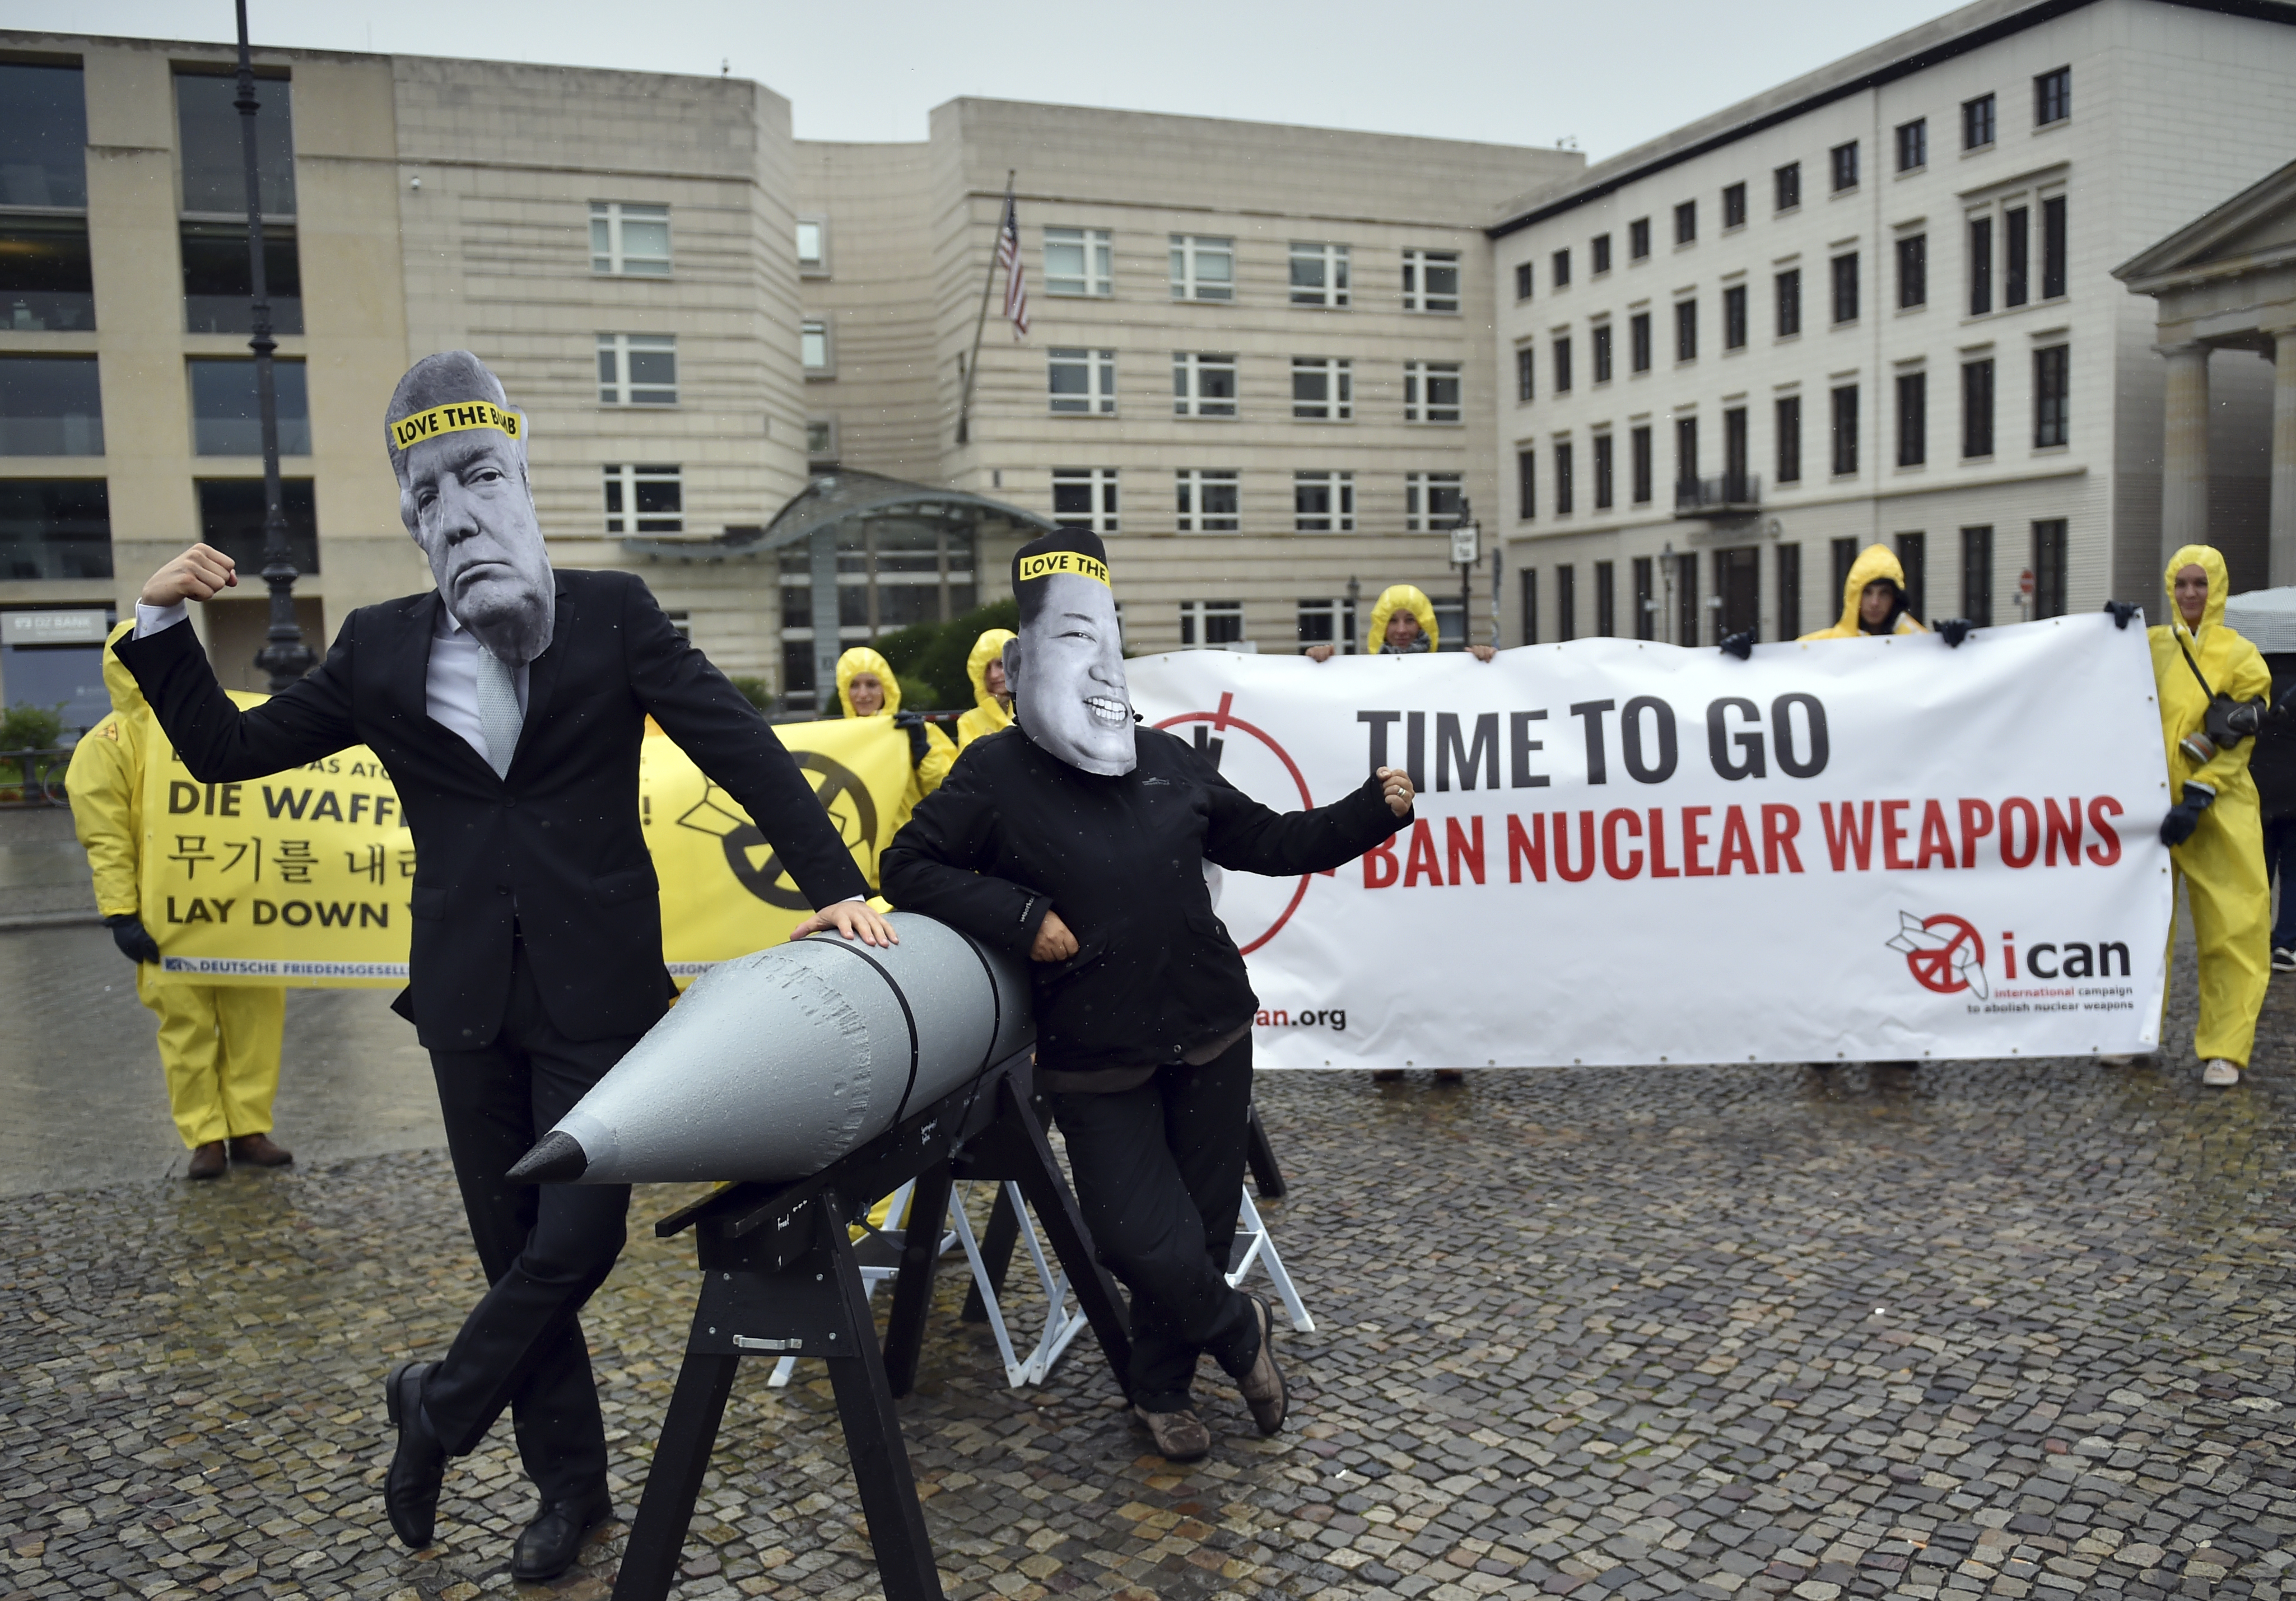 FILE - in this Sept. 13, 2017 file photo activists of the International Campaign to Abolish Nuclear Weapons (ICAN) protest against the conflict between North Korea and the USA with masks of the North Korean ruler Kim Jong Un, right, and the US president Donald Trump, left, in front of the US embassy in Berlin, Germany.{&amp;nbsp;} (Britta Pedersen/dpa via AP)<p></p>